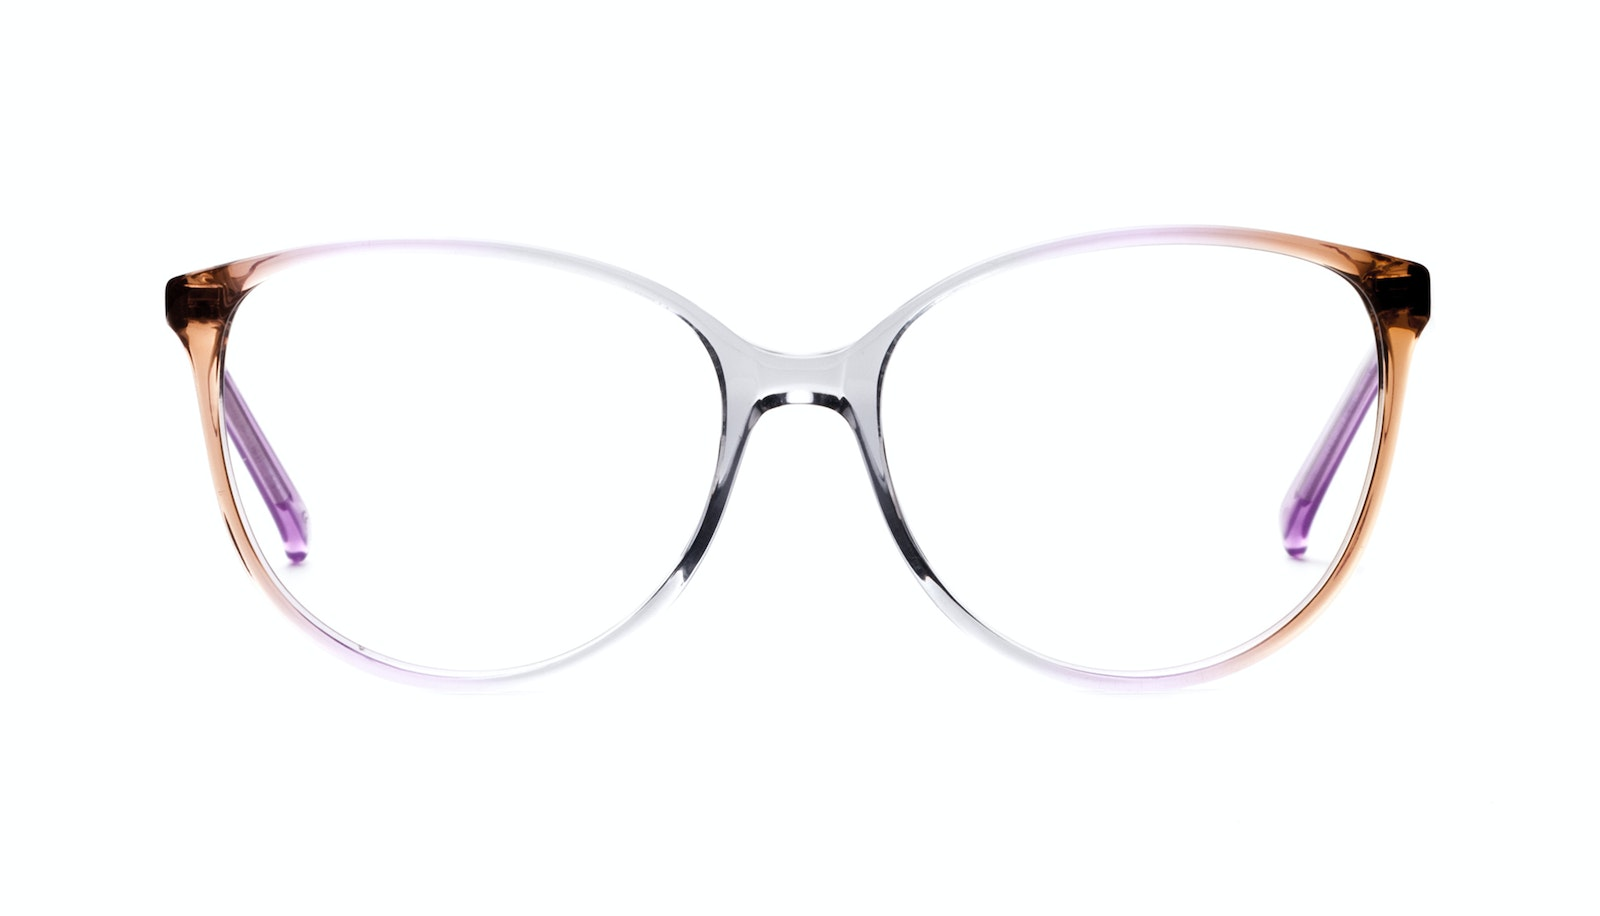 Affordable Fashion Glasses Cat Eye Eyeglasses Women Imagine Rainbow Haze